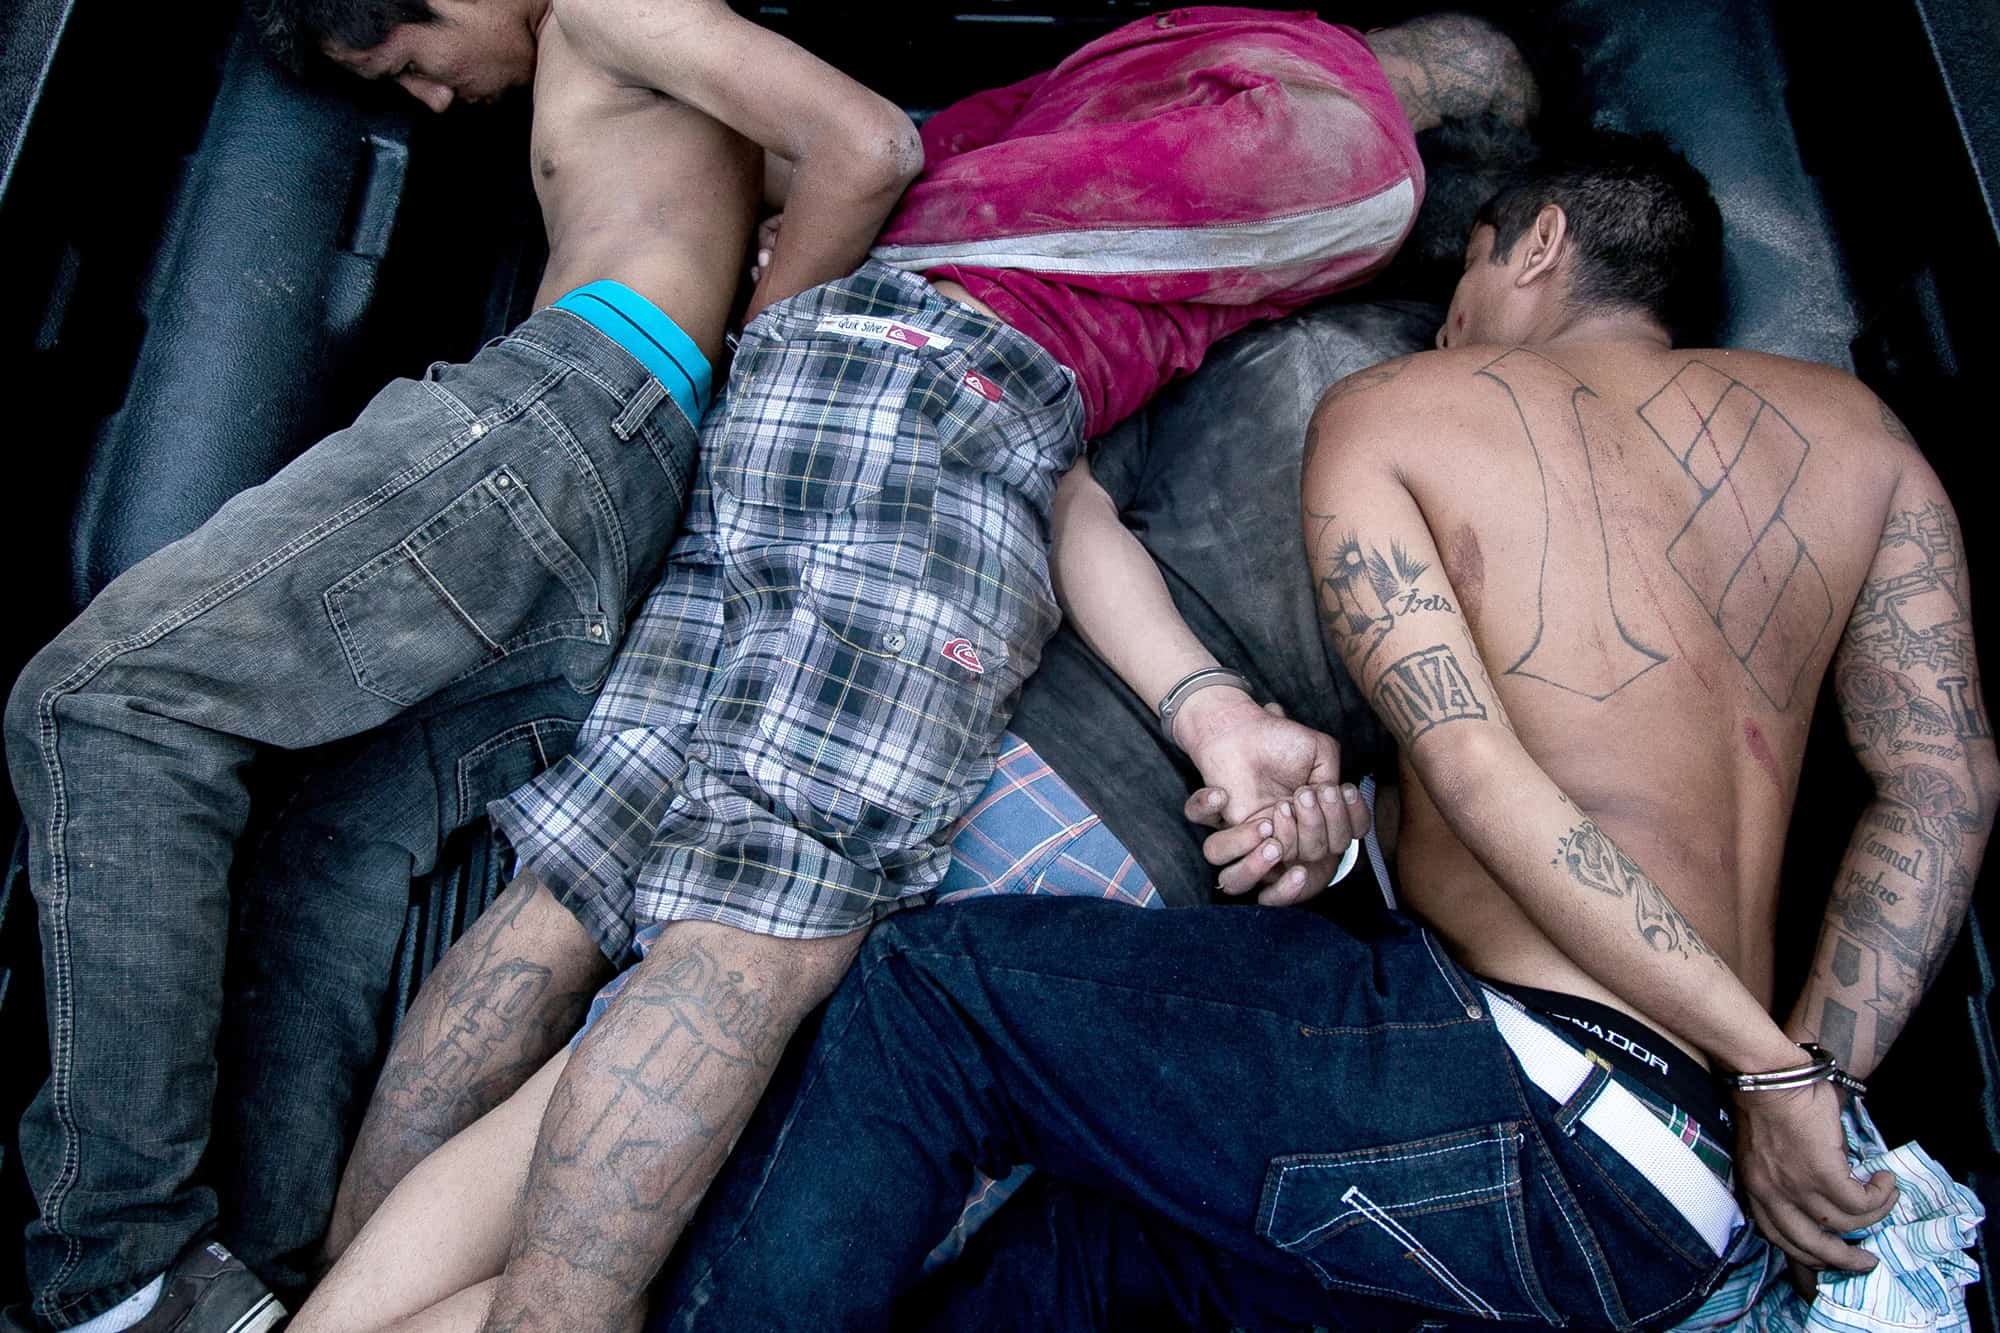 Four El Salvador gang members are captured by anti-gang policemen.